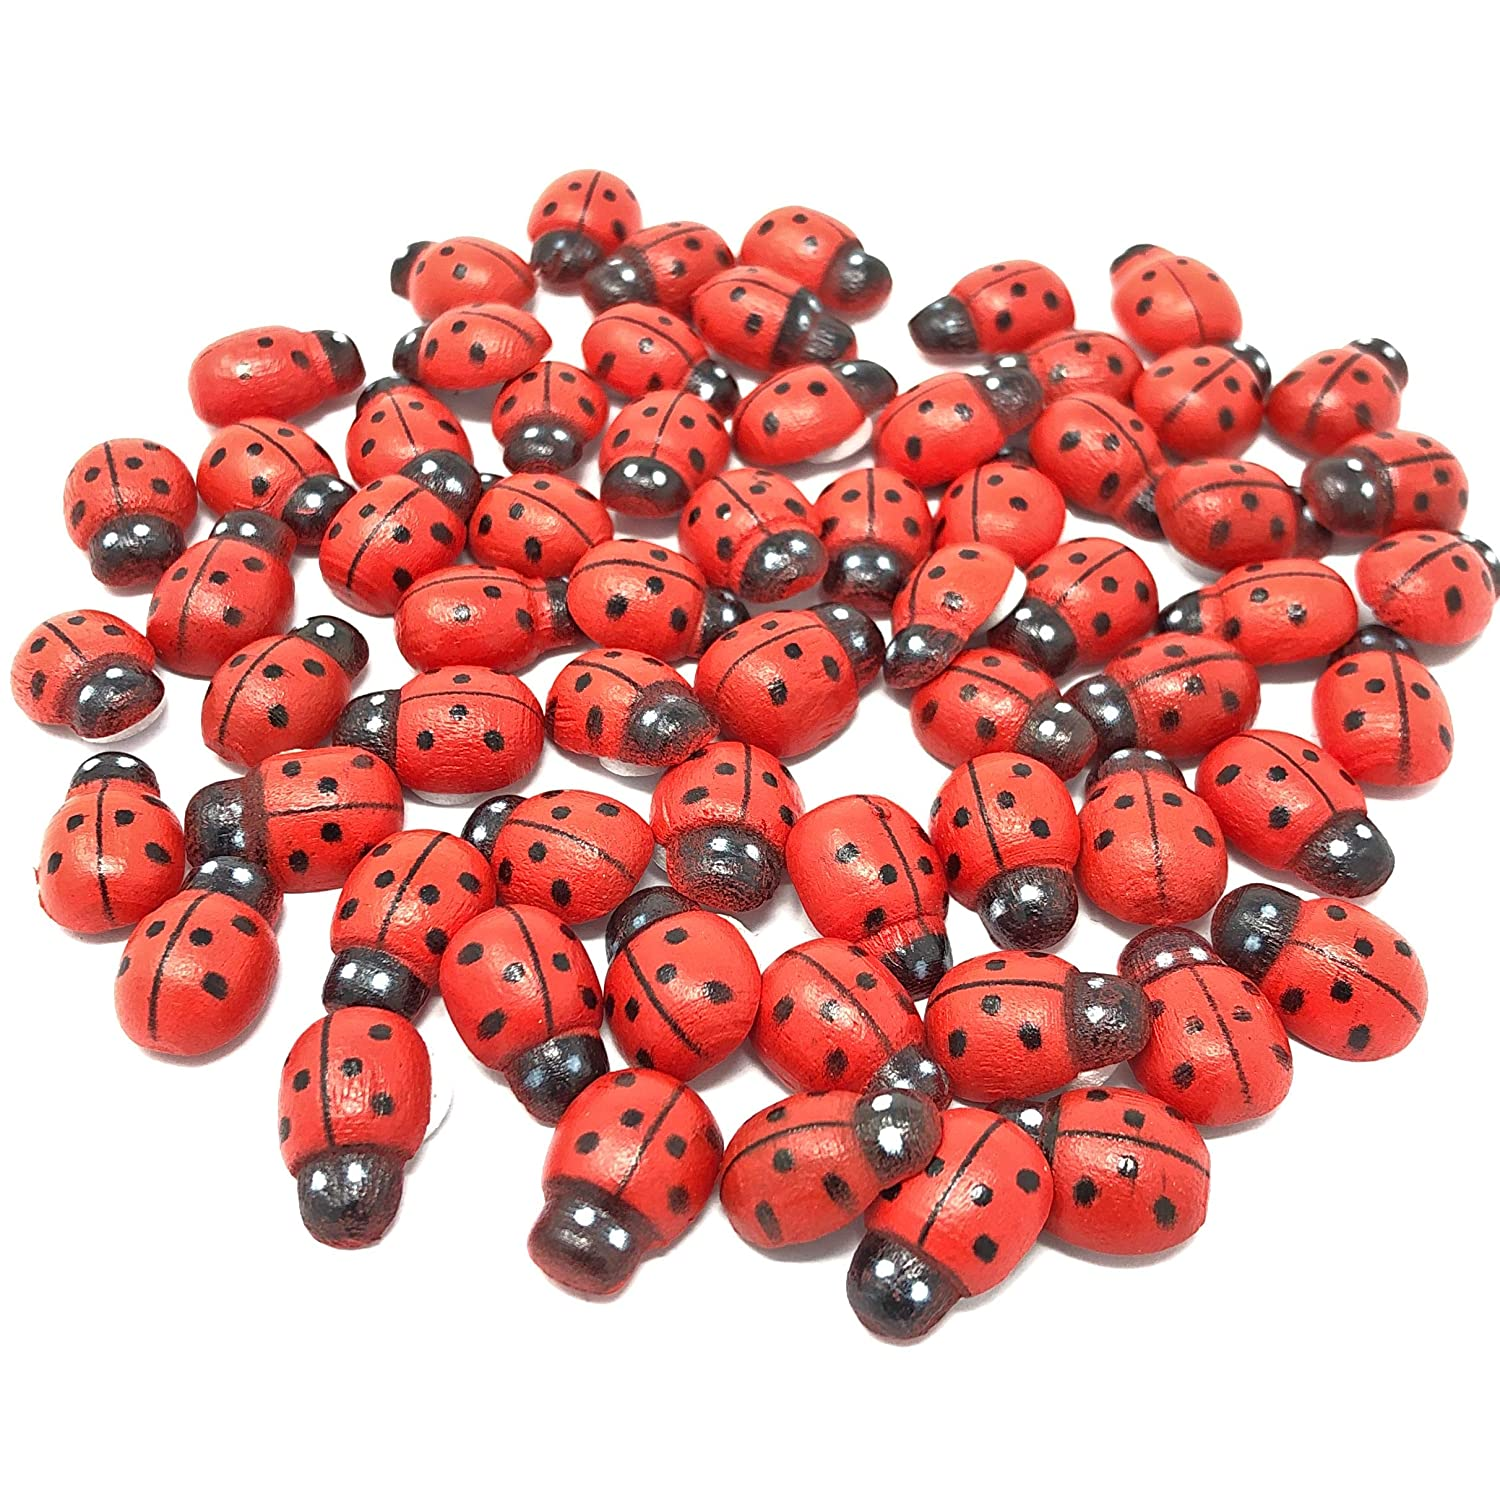 50 Wedding Touches Mini 9x12mm Self Adhesive Wooden Ladybird Ladybugs Craft Card Wood Toppers